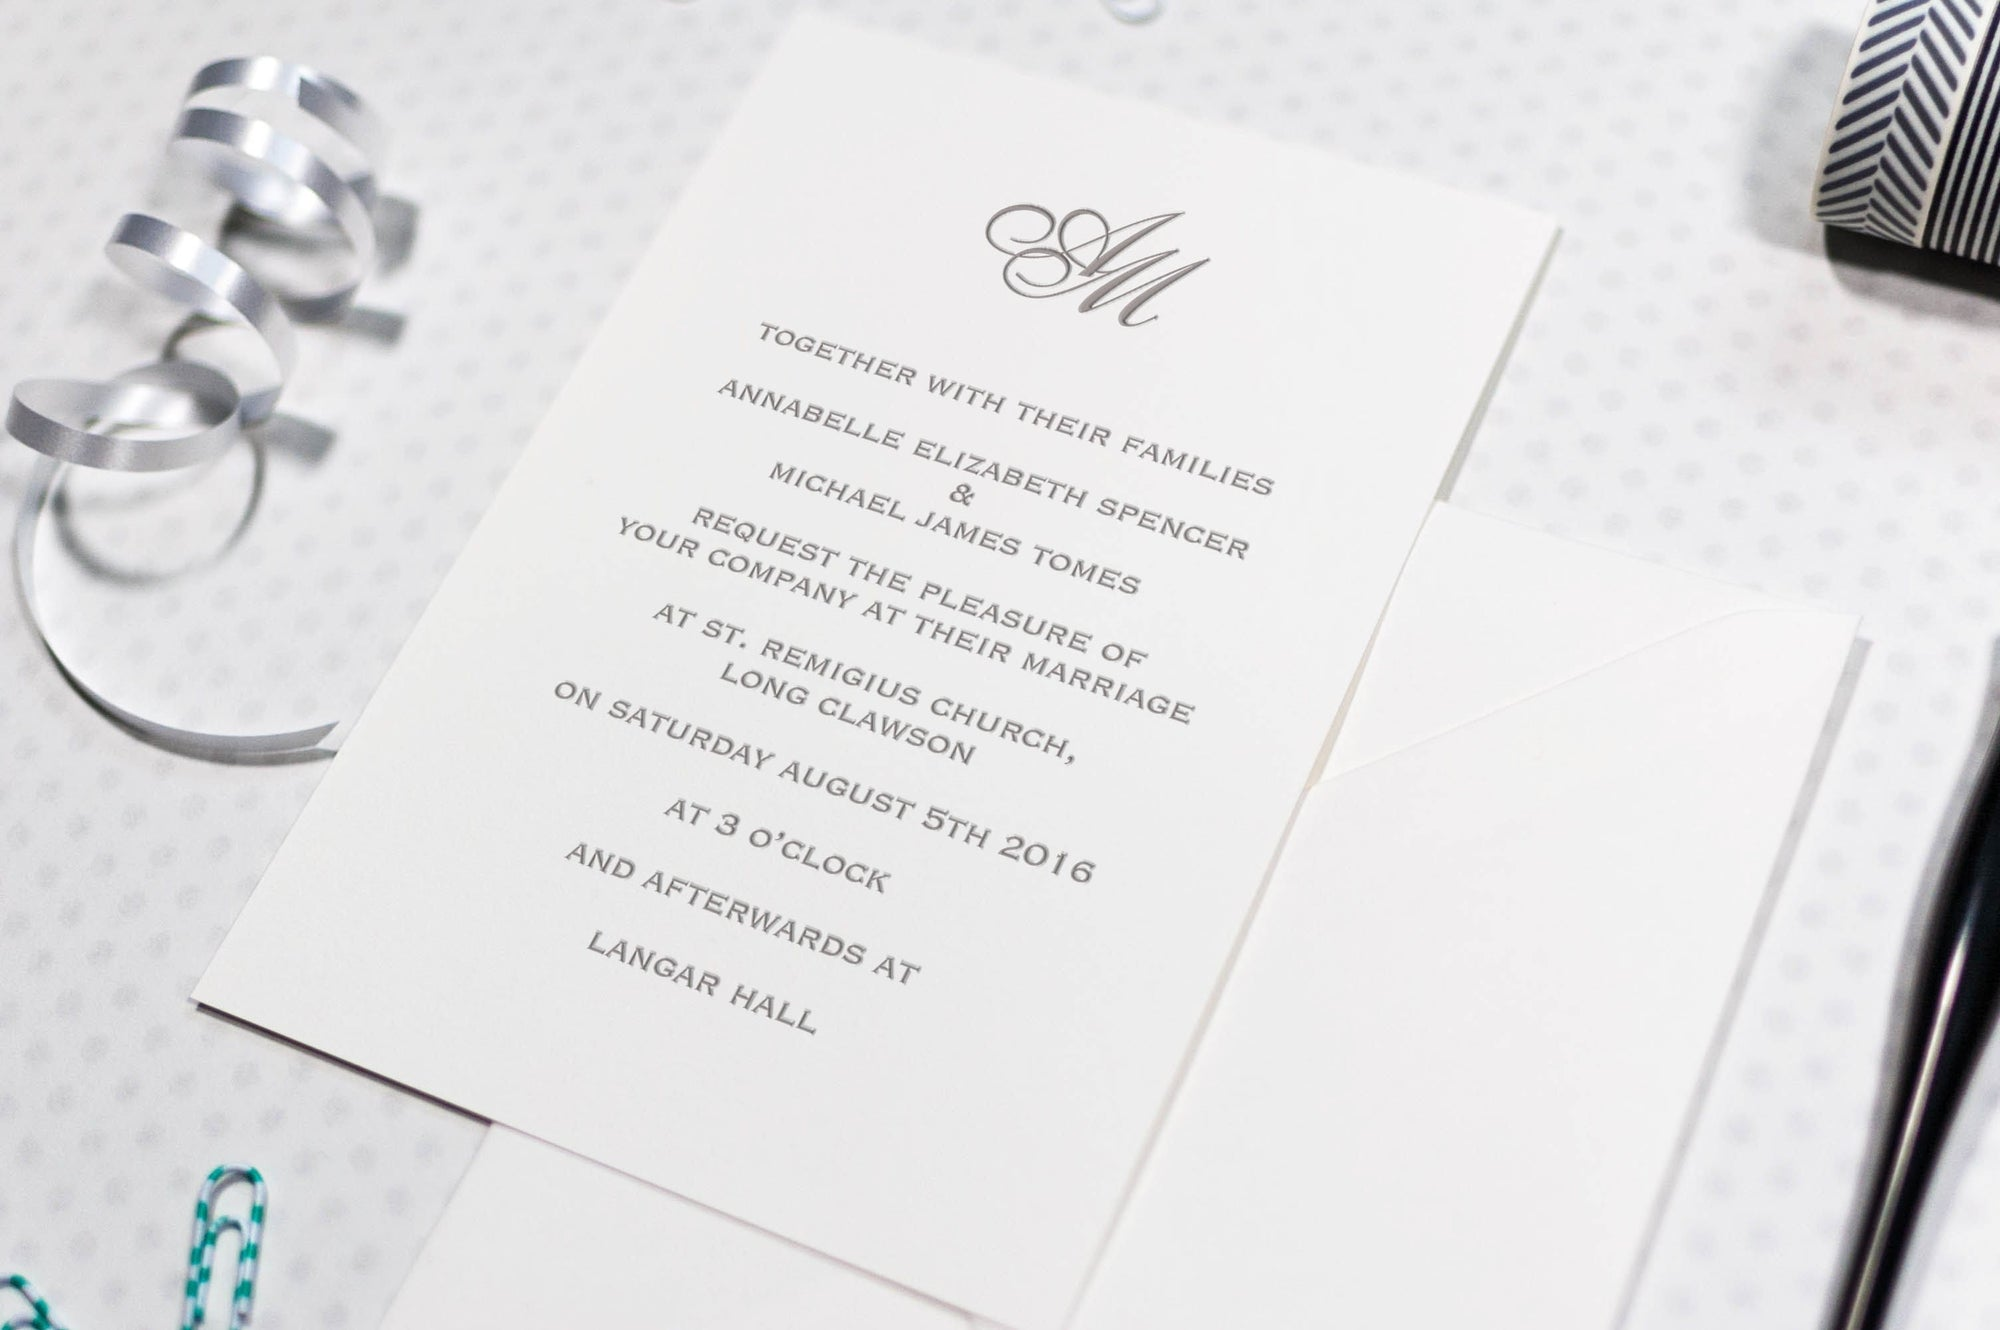 luxuryweddinginvitationsbycombossa HD Printed Wedding Invitations Classic Monogram Wedding Invitation, HD Digital Print